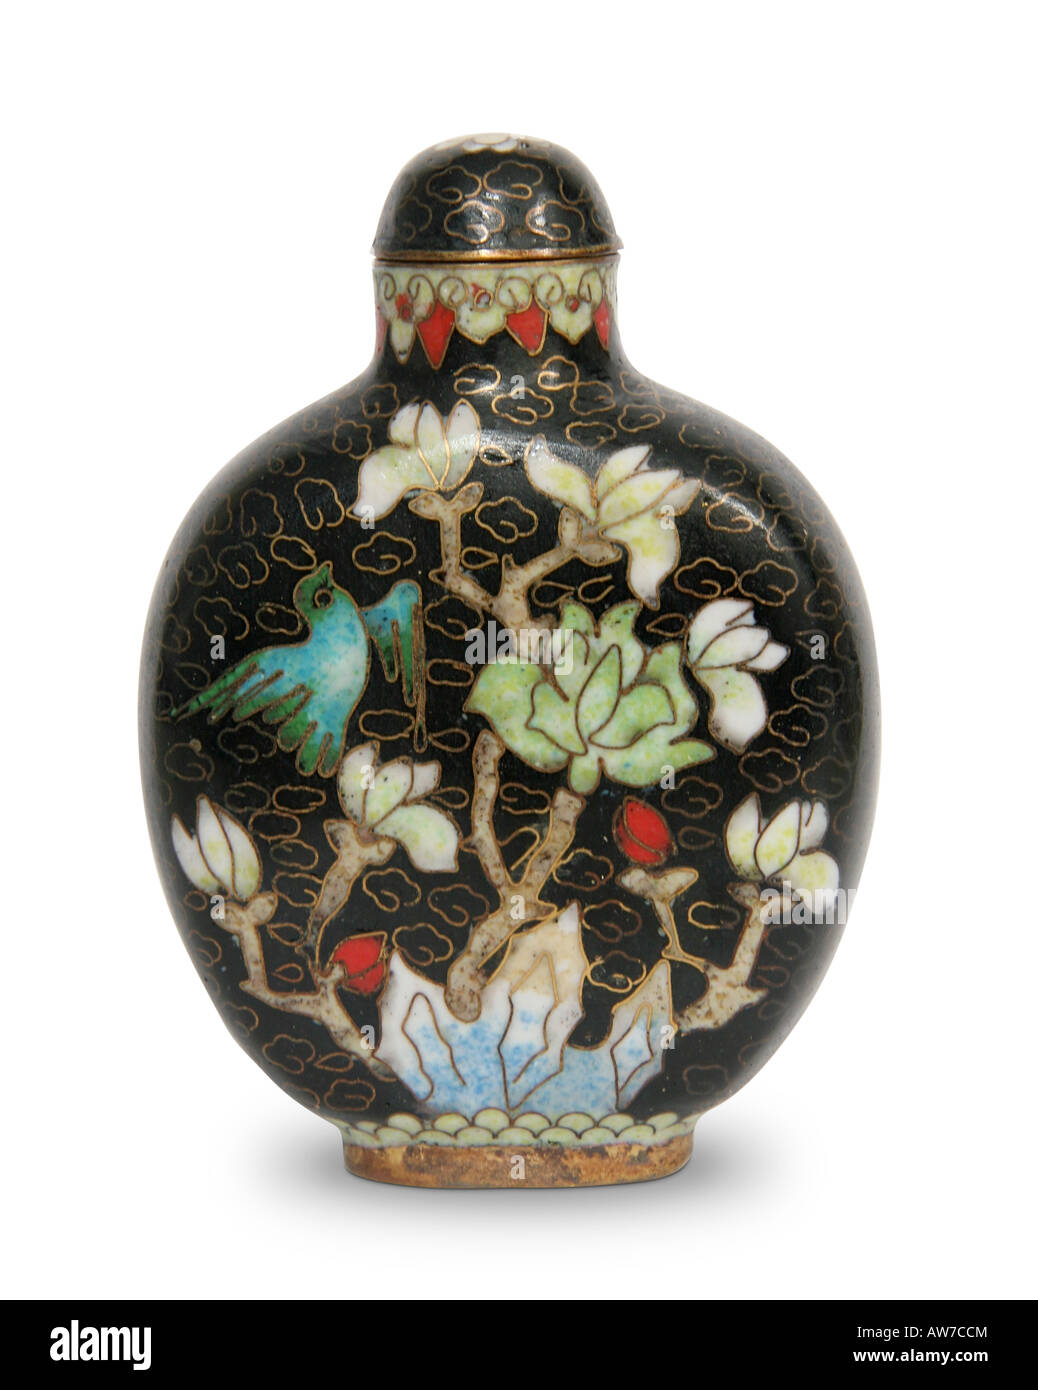 Chinese Antique Cloisonne hand-painted moon goddess snuff bottle